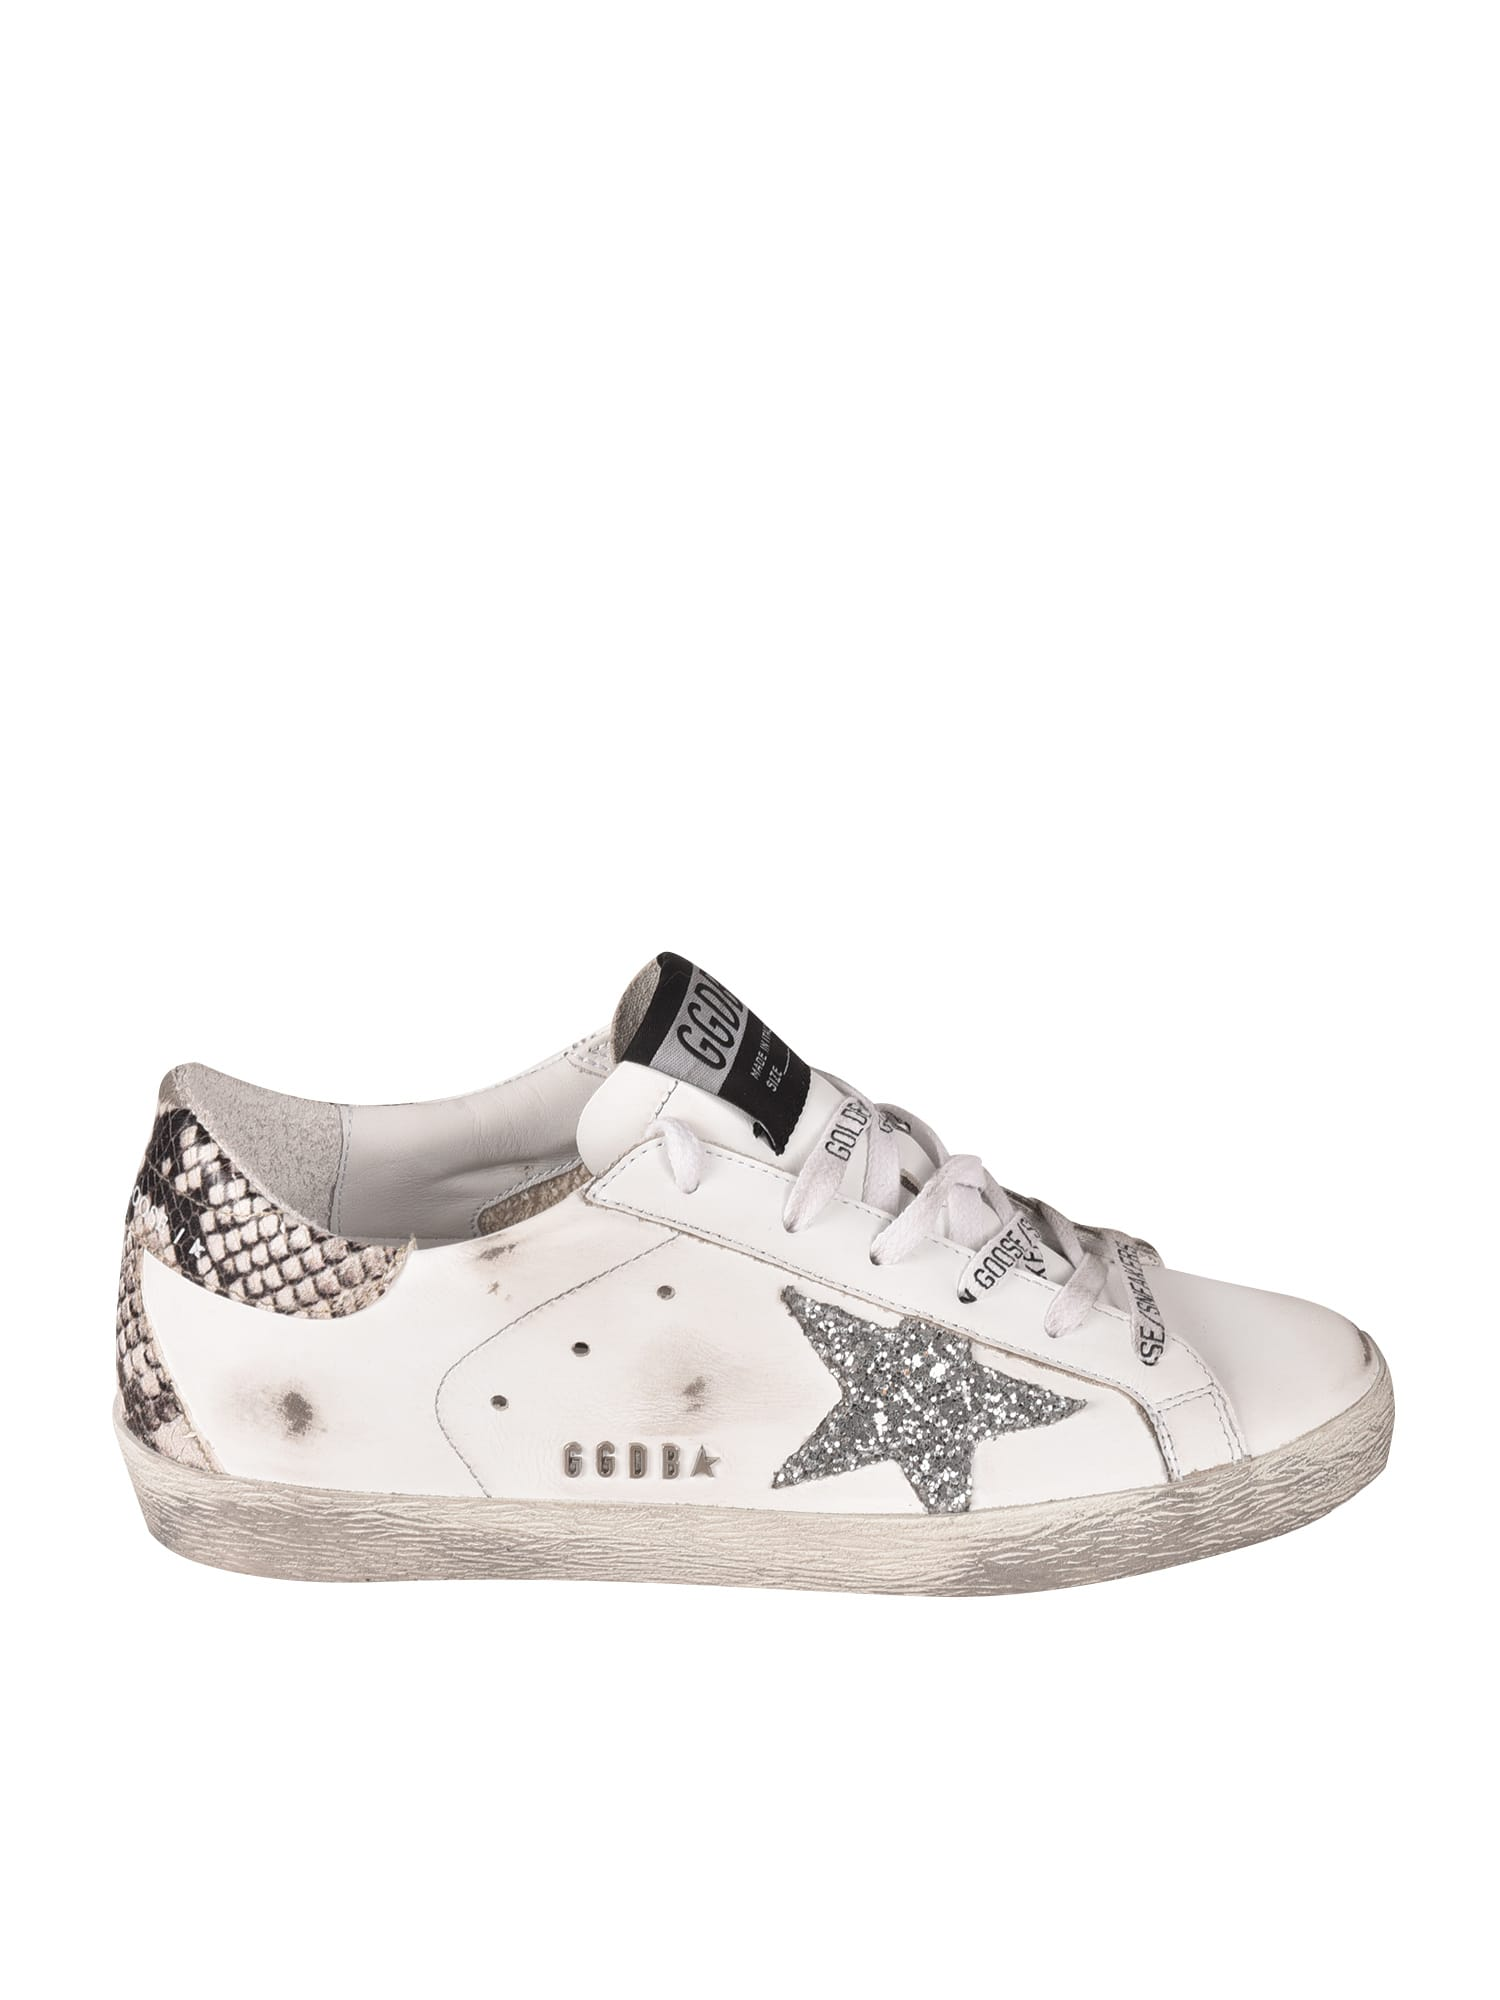 Buy Golden Goose Classic Super-star Sneakers online, shop Golden Goose shoes with free shipping